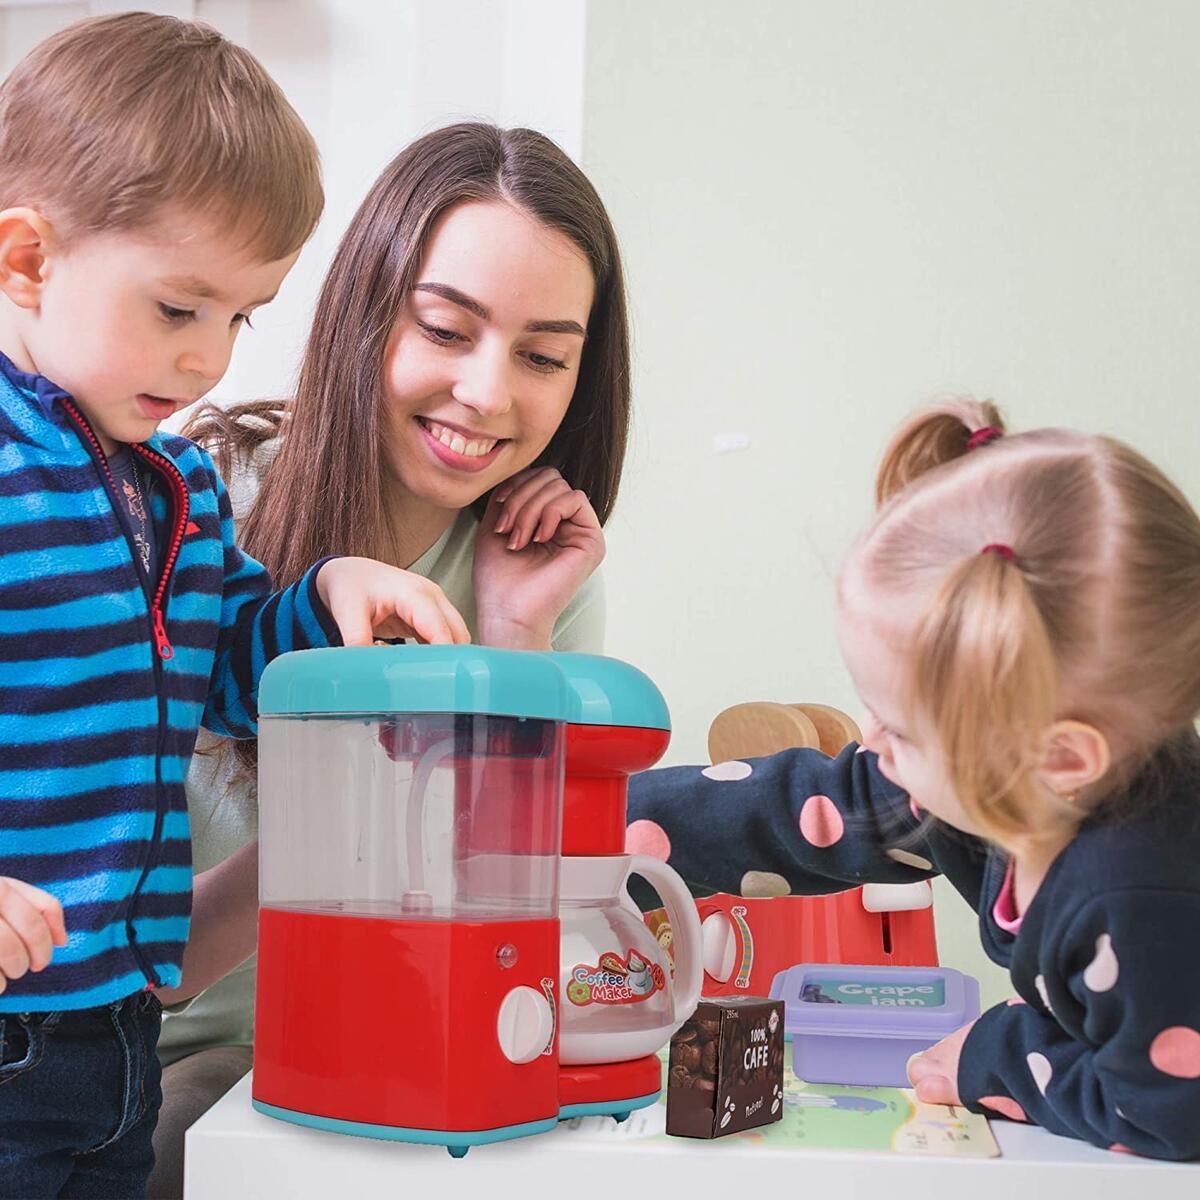 Playkidz Breakfast Set with Coffee Maker and Toaster Play - Kitchen Set with Lights and Sounds and Pretend Play Fake Food - Educational Toy - Recommended for Ages 3+